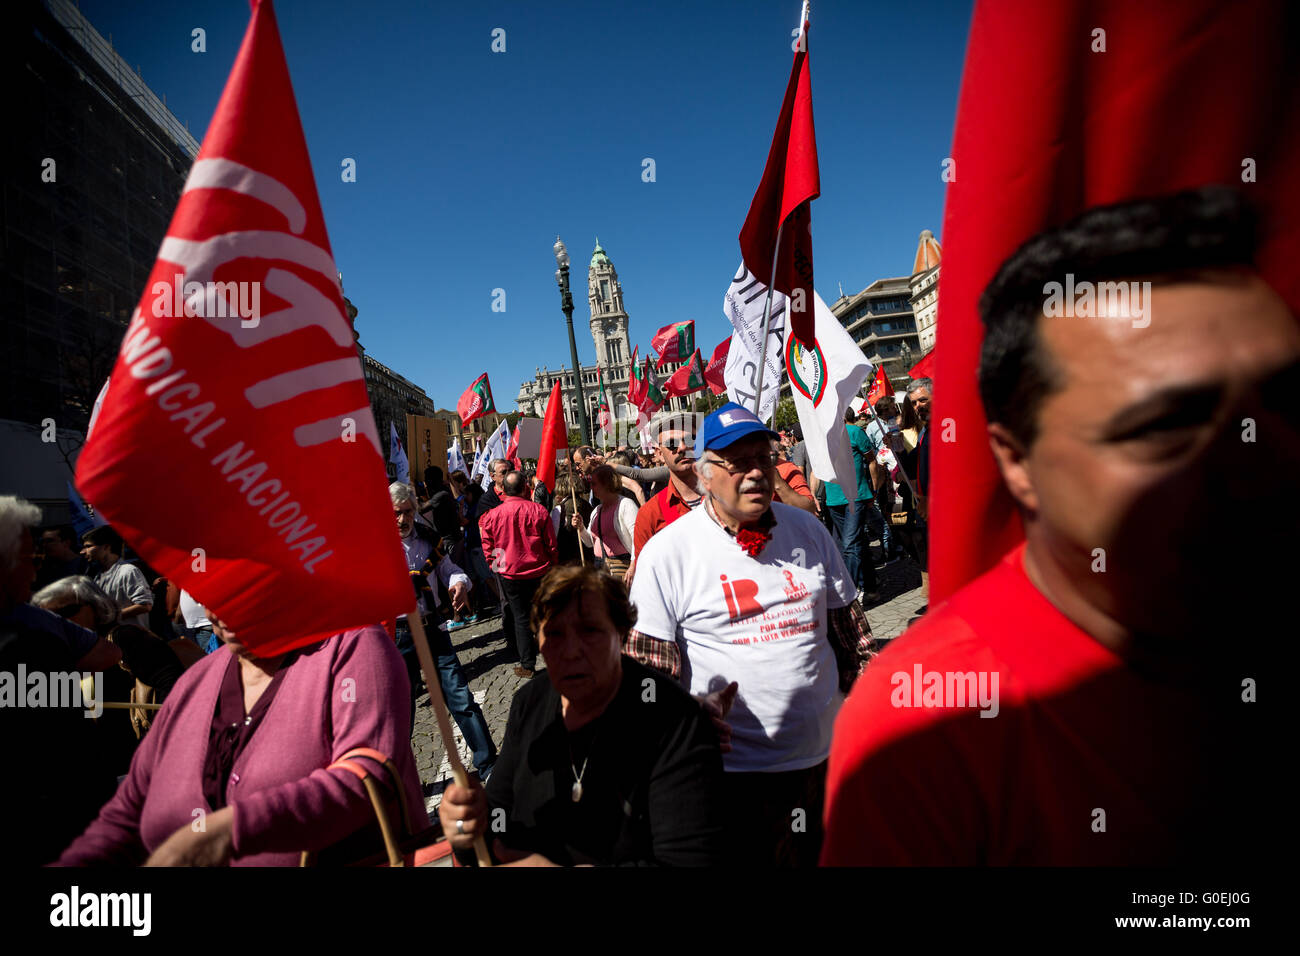 Hundreds of people manifested in the streets of Porto during the celebrations of labor day against unemployment, - Stock Image